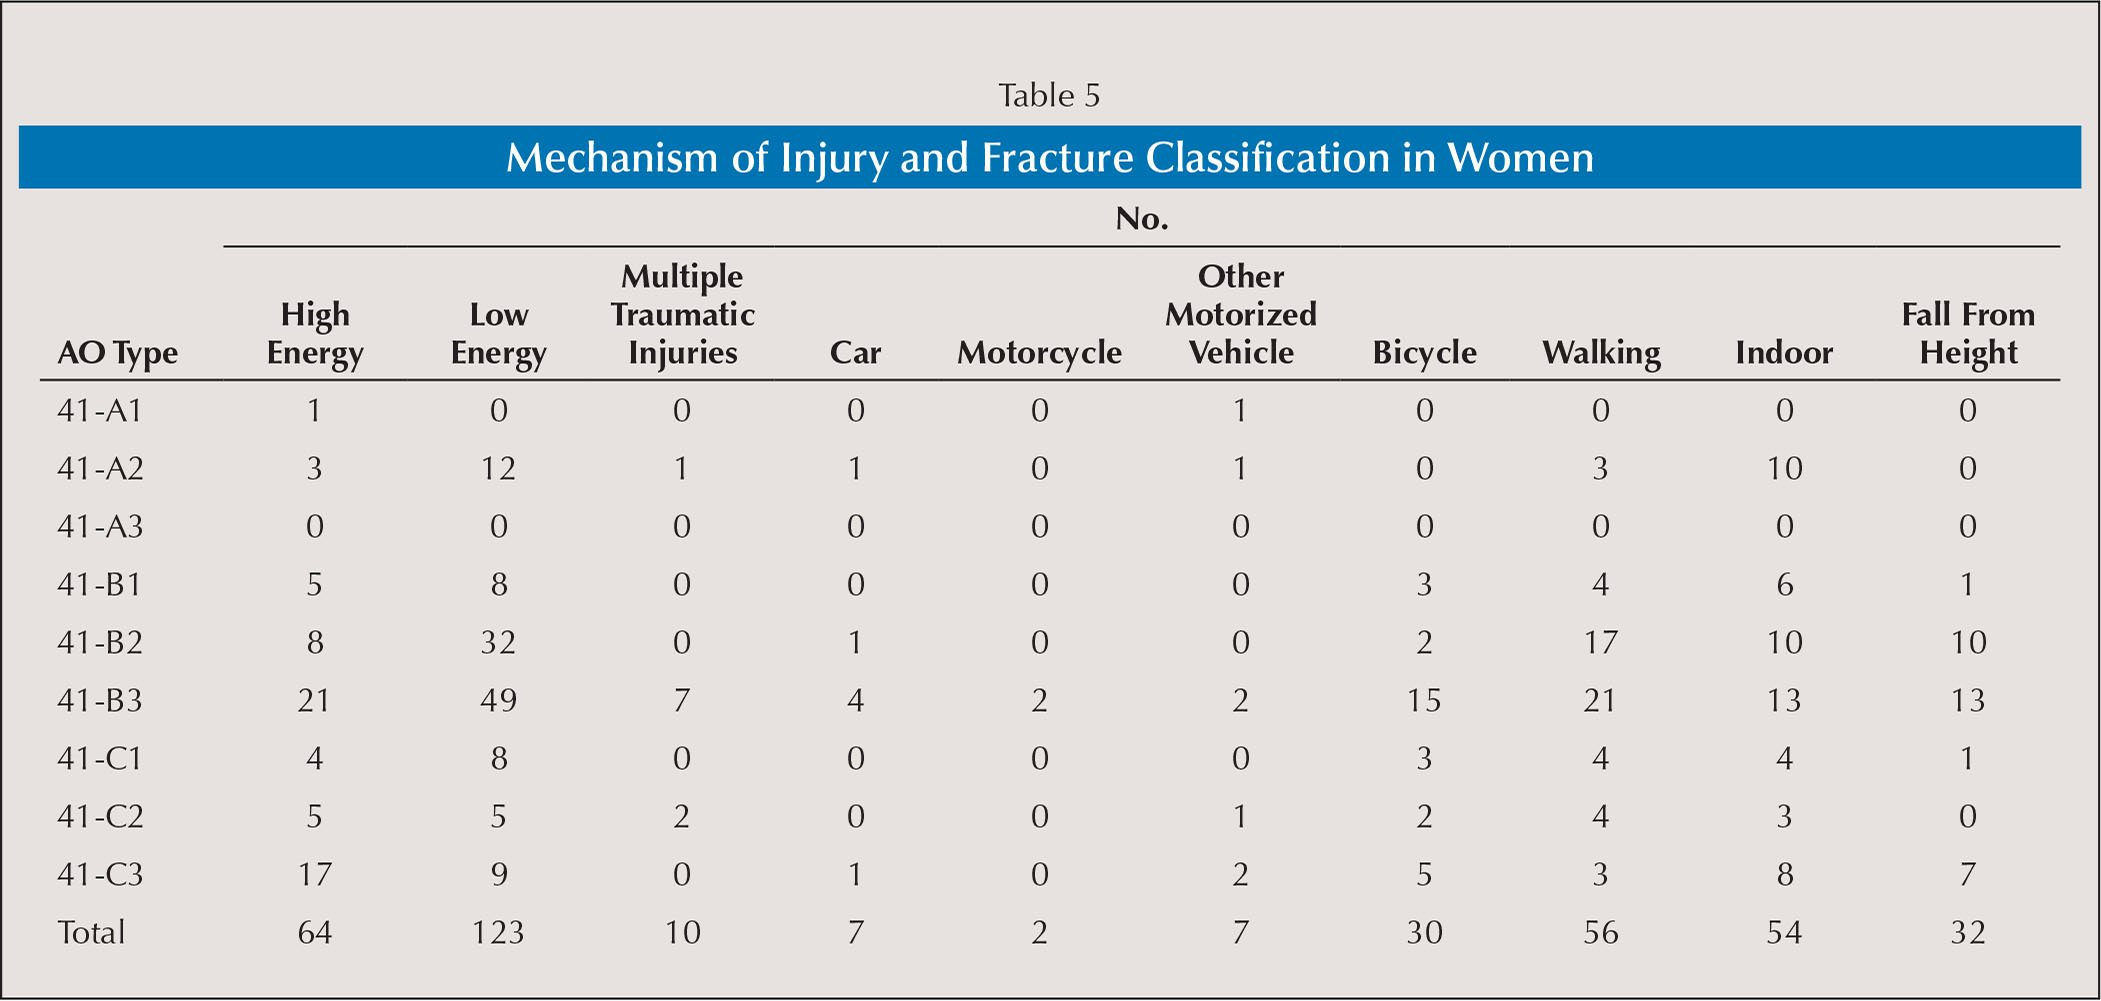 Mechanism of Injury and Fracture Classification in Women